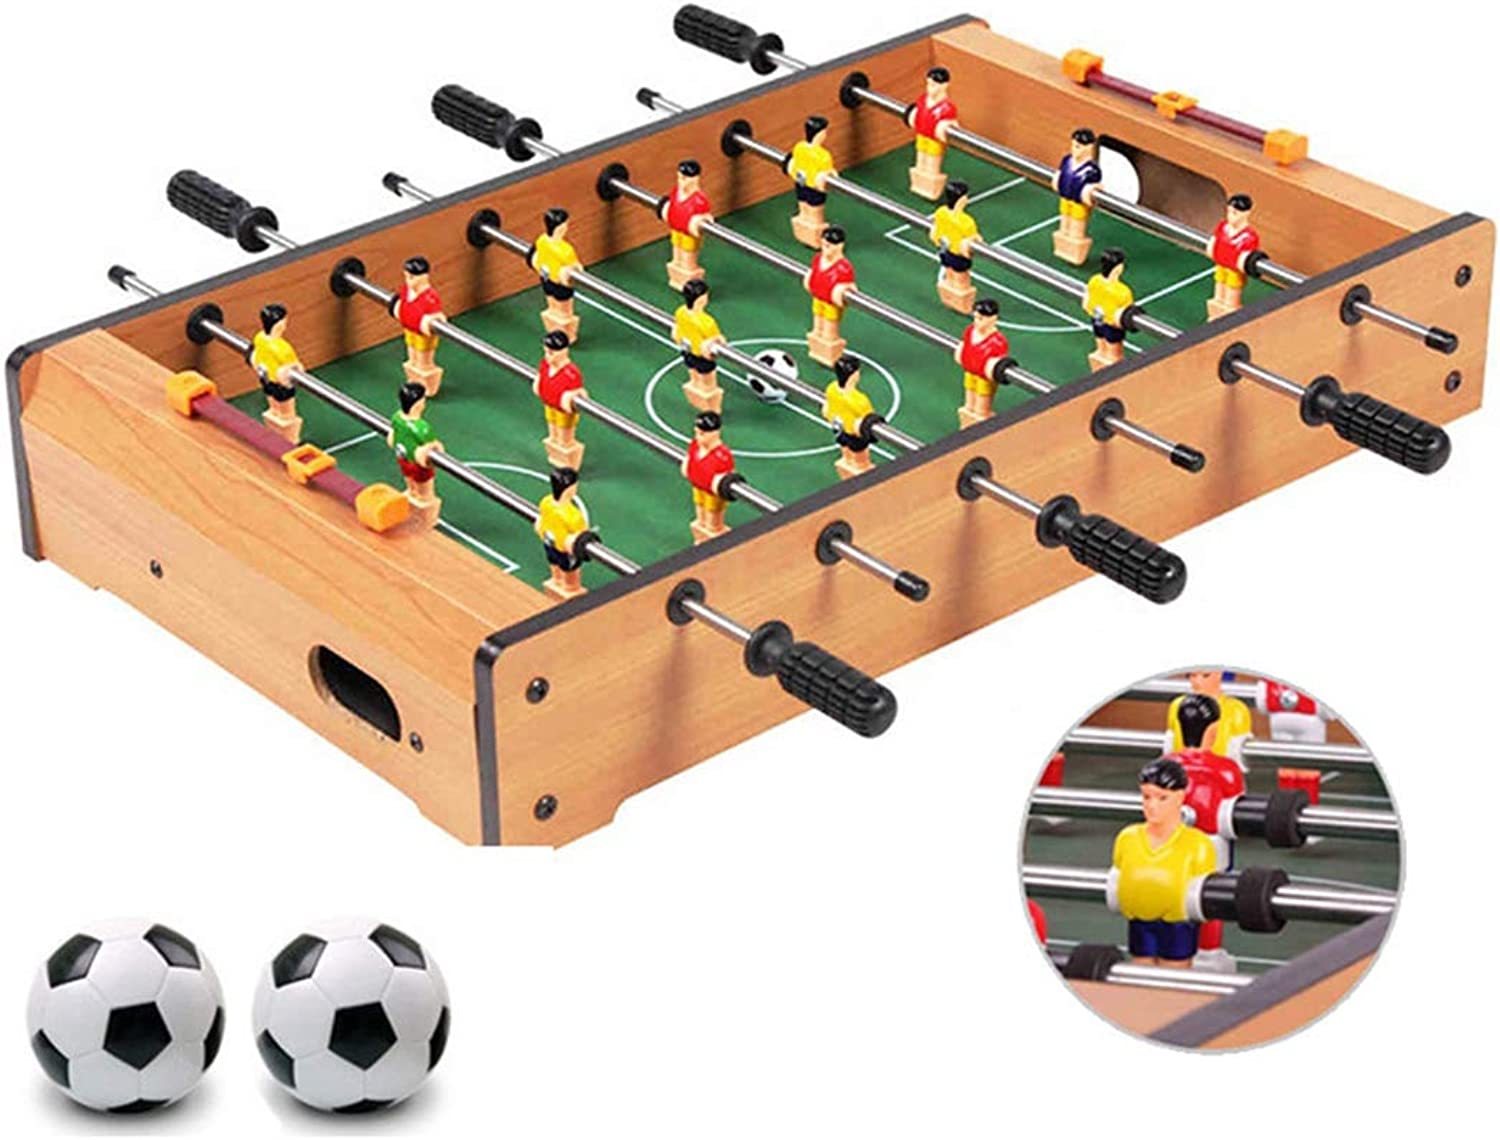 Zgifts Tabletop Foosball Table Games  48cm Solid Wood Portable Mini Table Soccer Sport Game Set Room Sports with two balls for Home Party Adults Kids